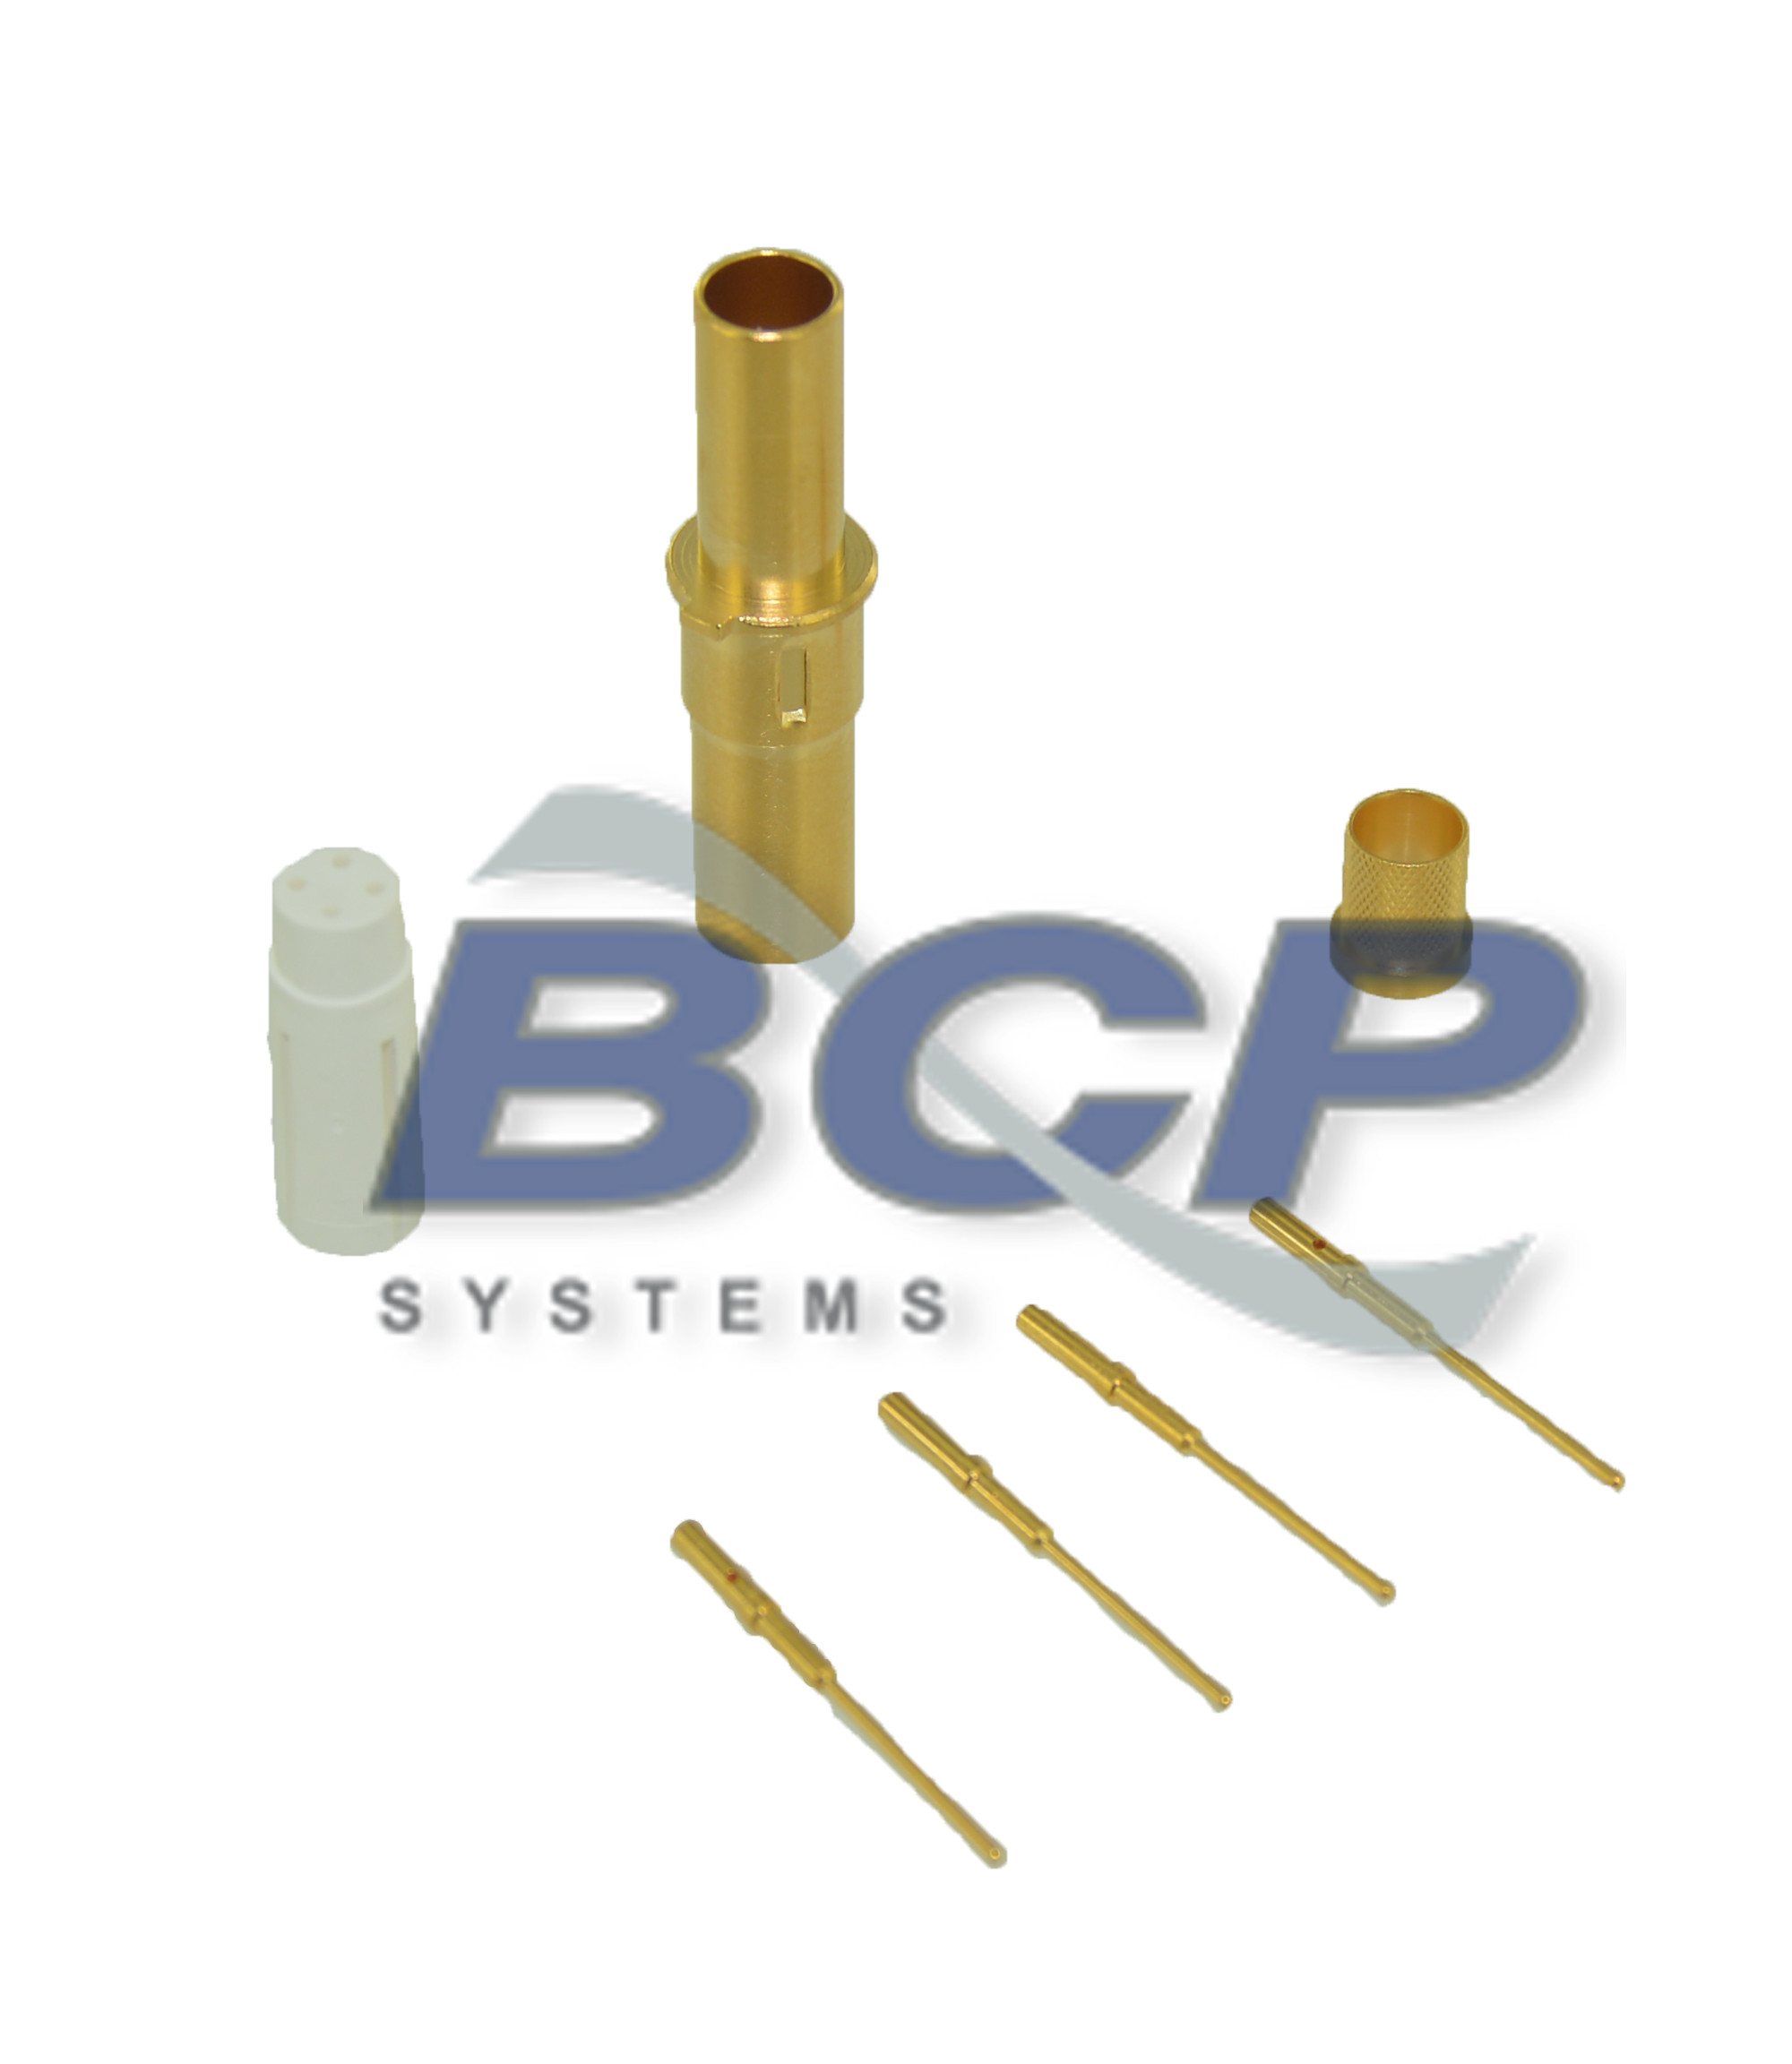 Bcp Systems Specialized Wire Harness Assembly And Repair Services Tools For The Aerospace Medical Oil Industries